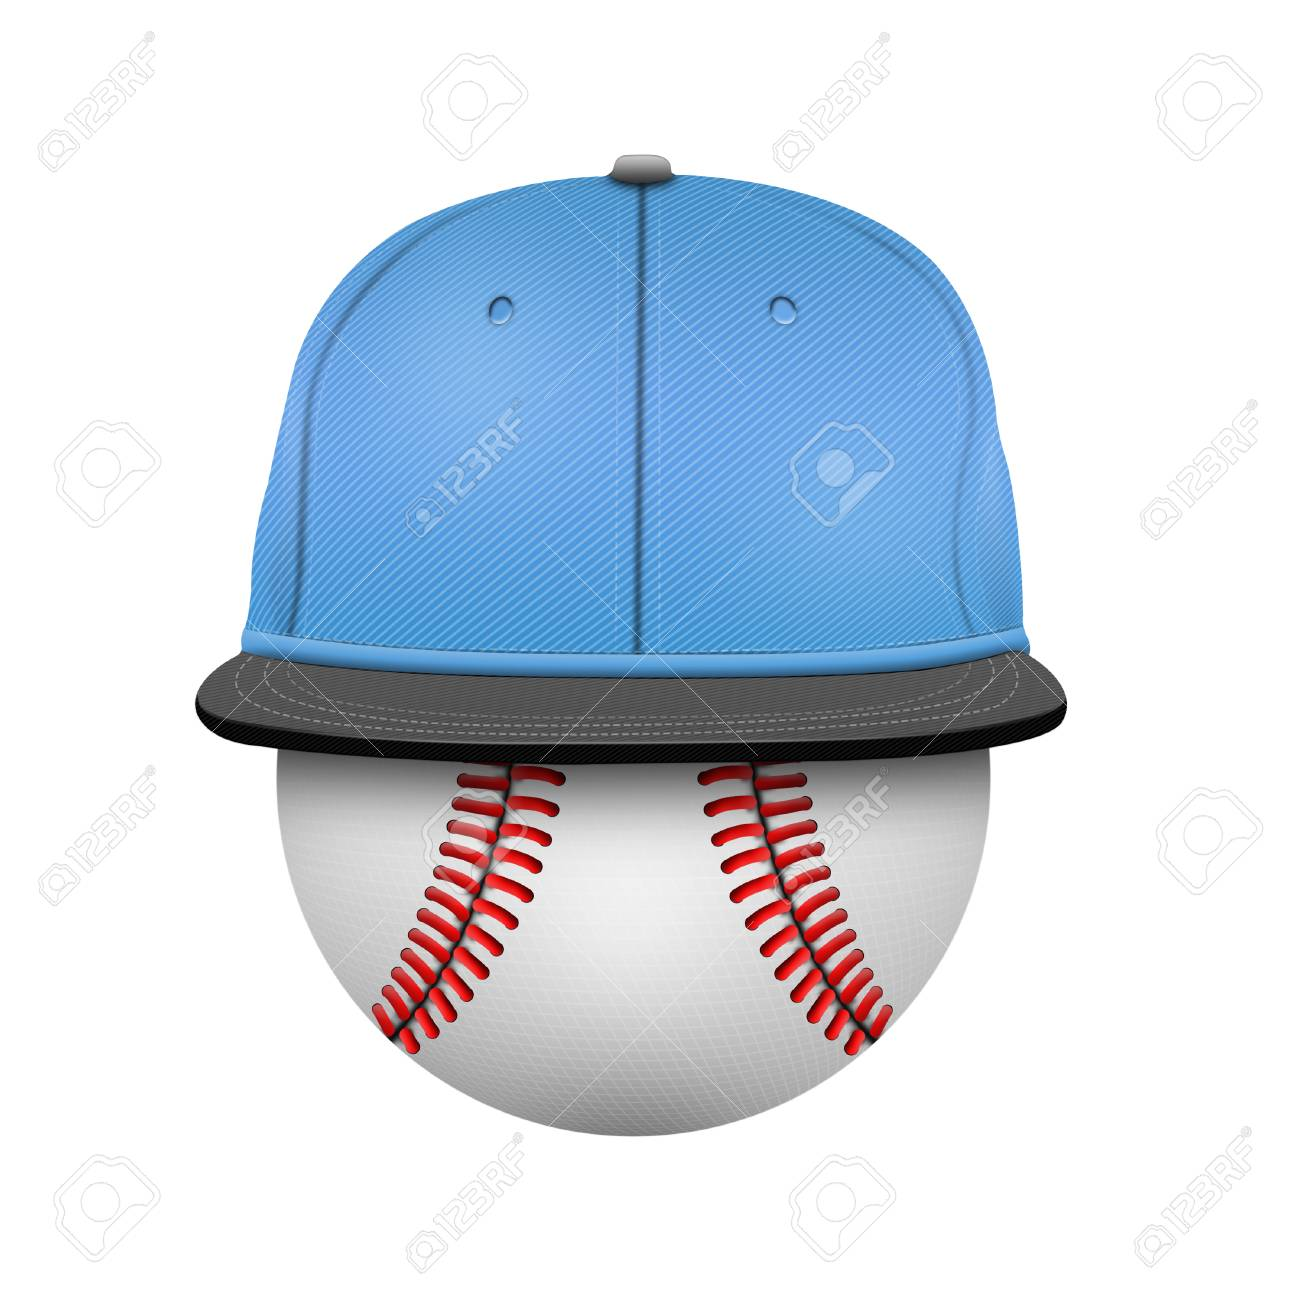 white and blue baseball cap template stock photo picture and